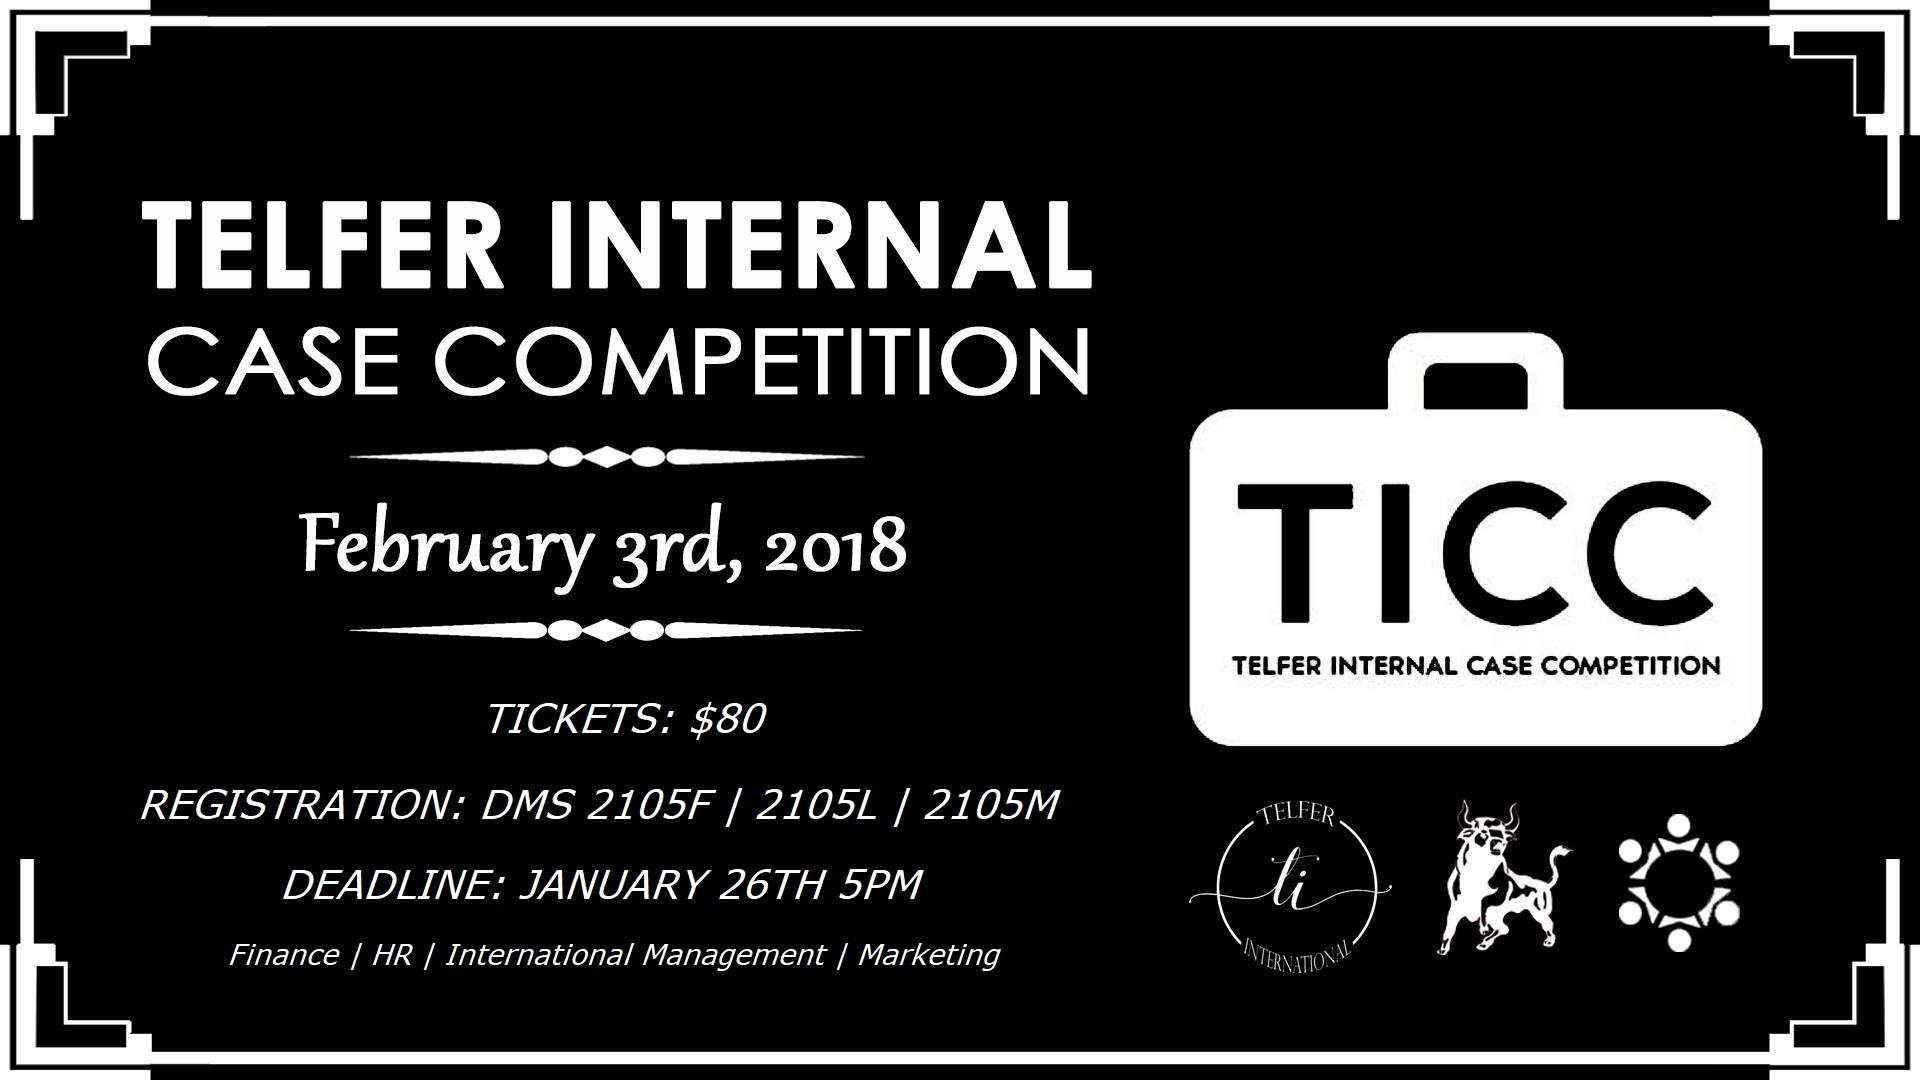 Telfer International Case Competition (TICC)